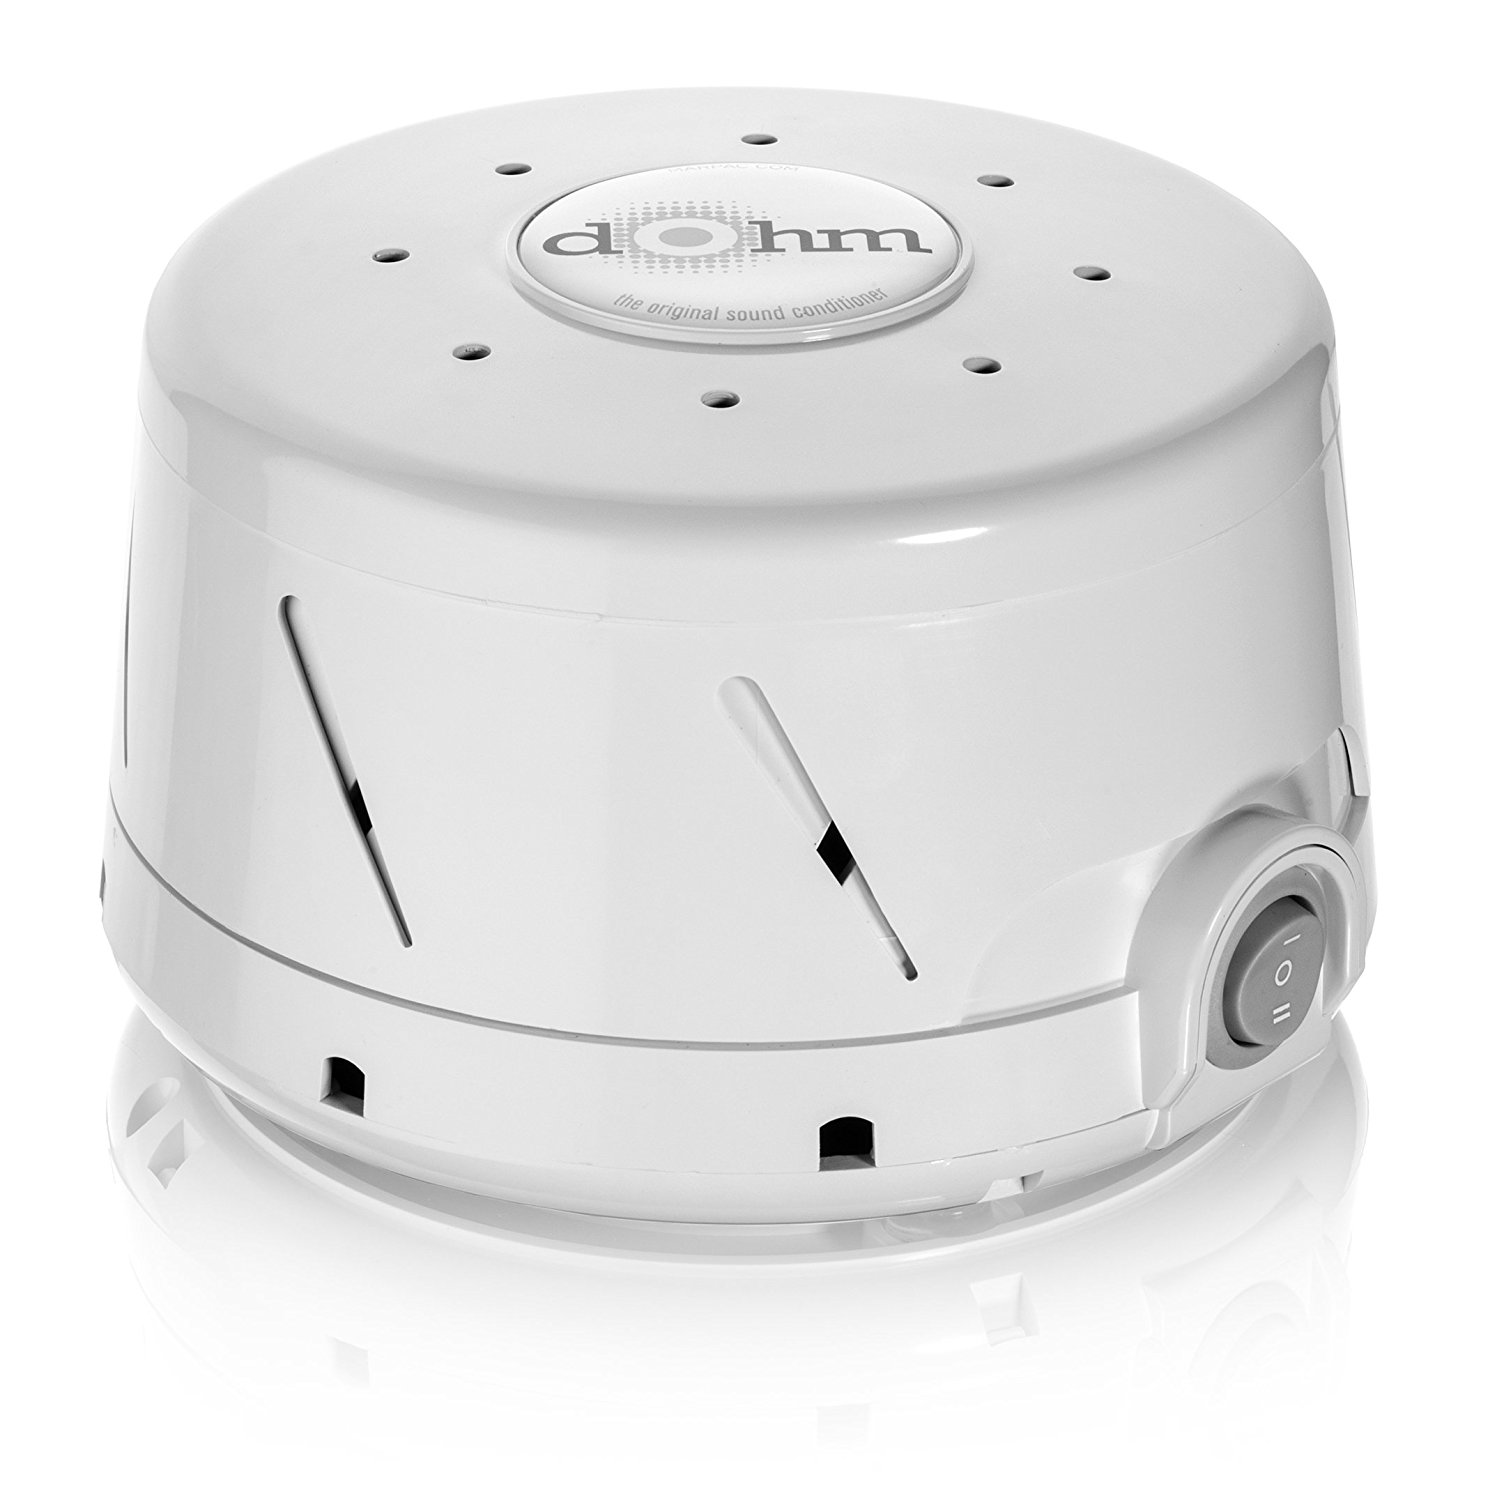 marpac dohm original sound conditioner review